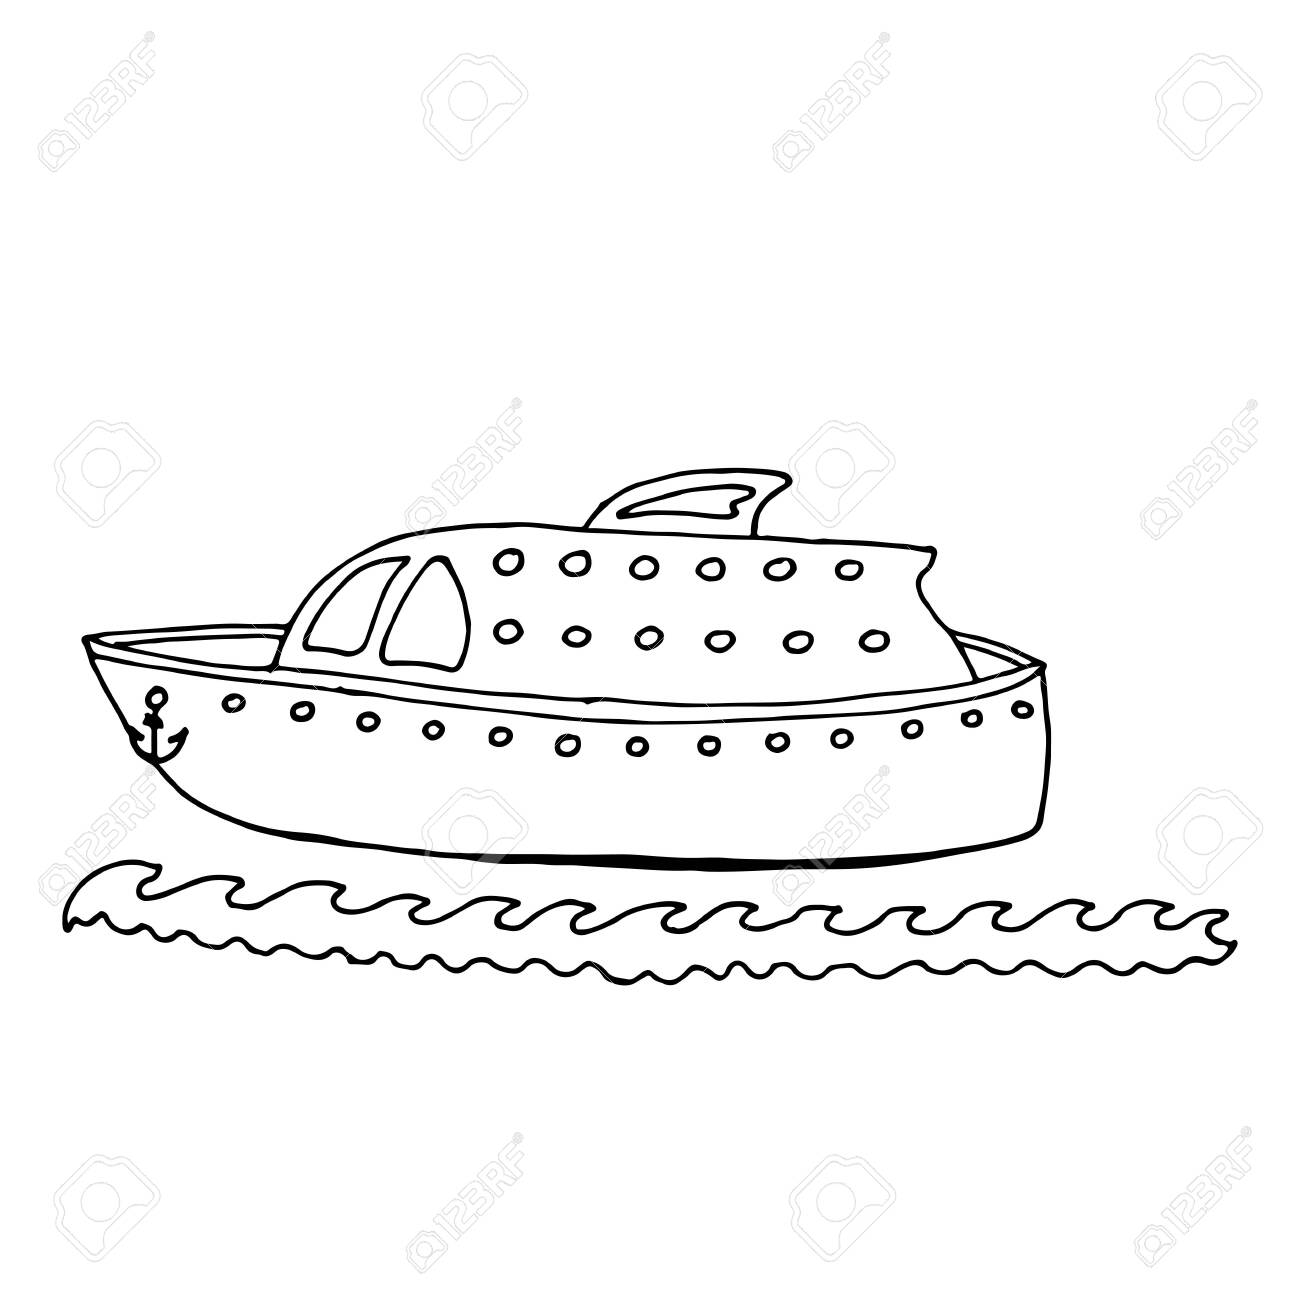 Black Line Ship Or Boat For Coloring Book Vector Transport Royalty Free Cliparts Vectors And Stock Illustration Image 128038433